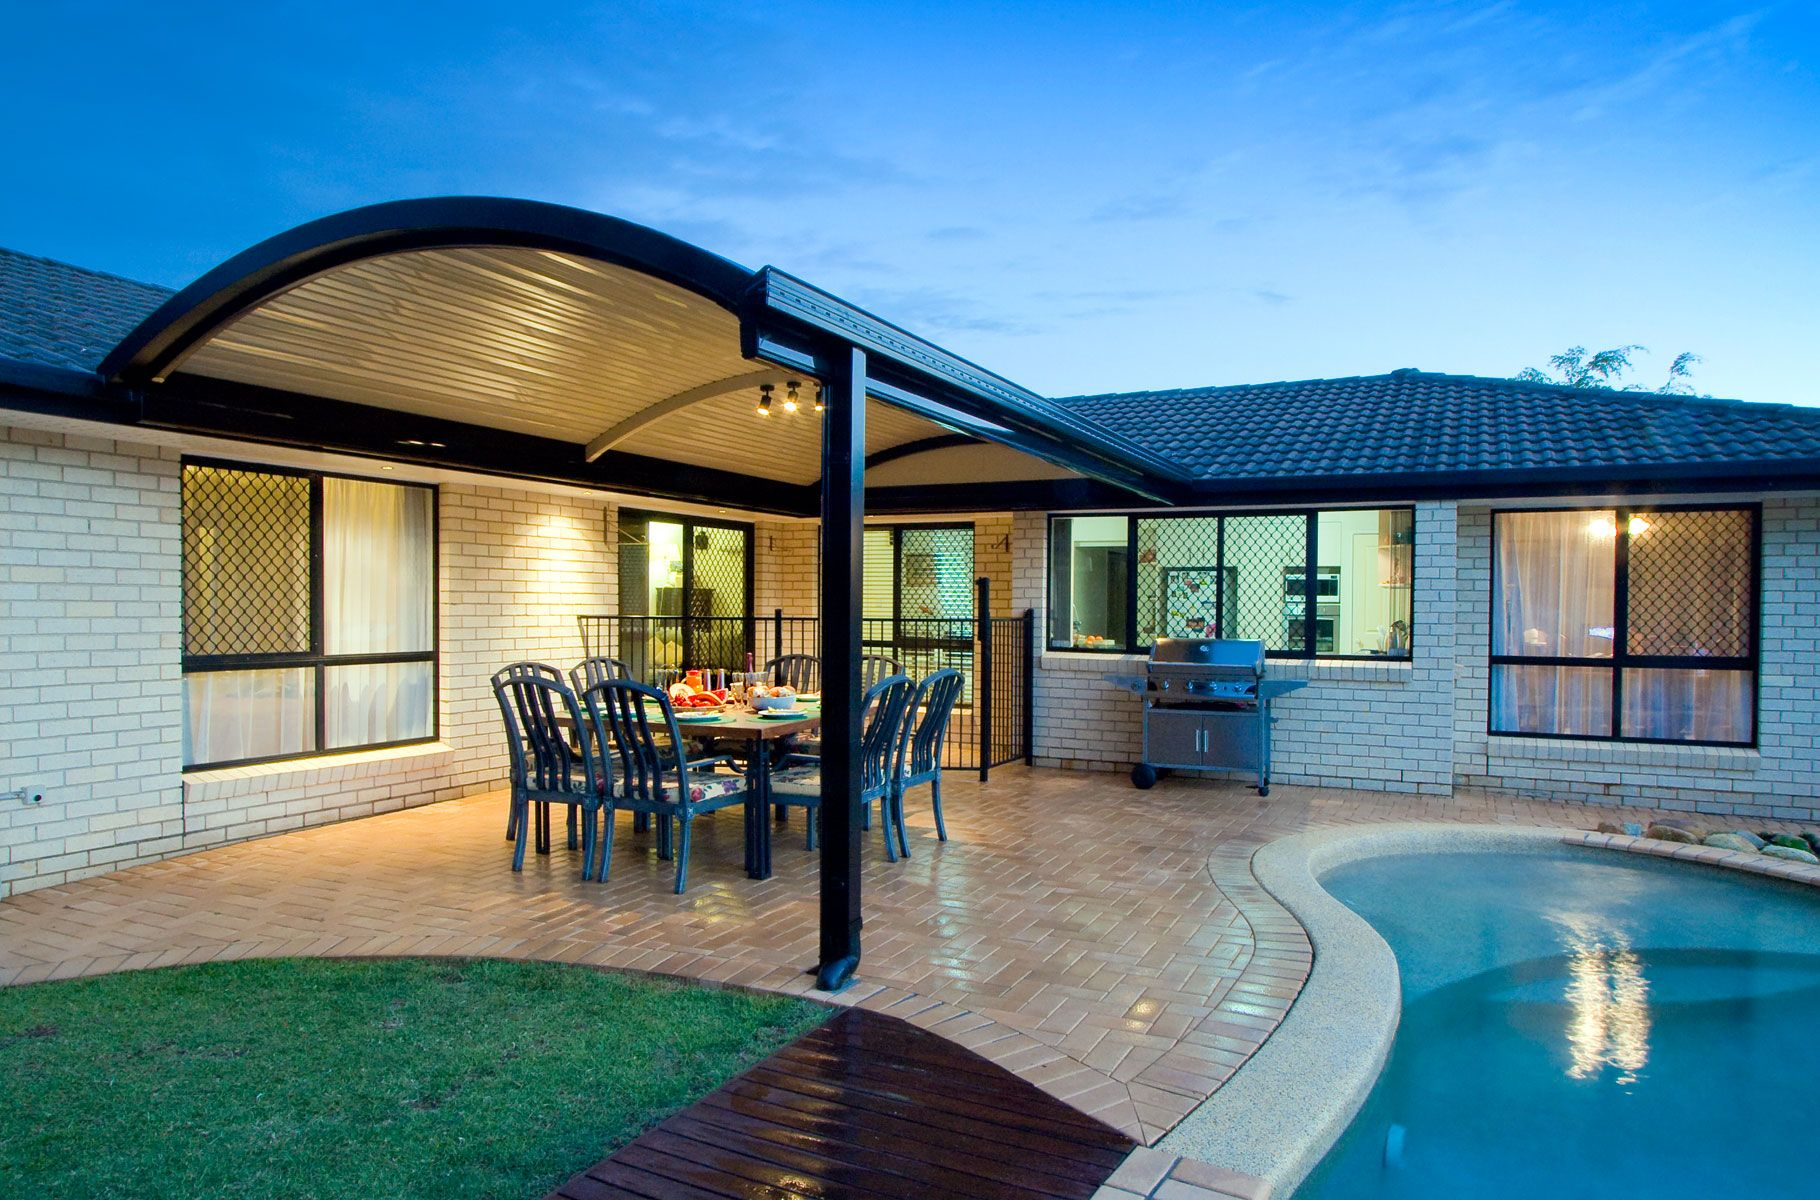 Buy a Carport Deck or Patio for your home Curved patio